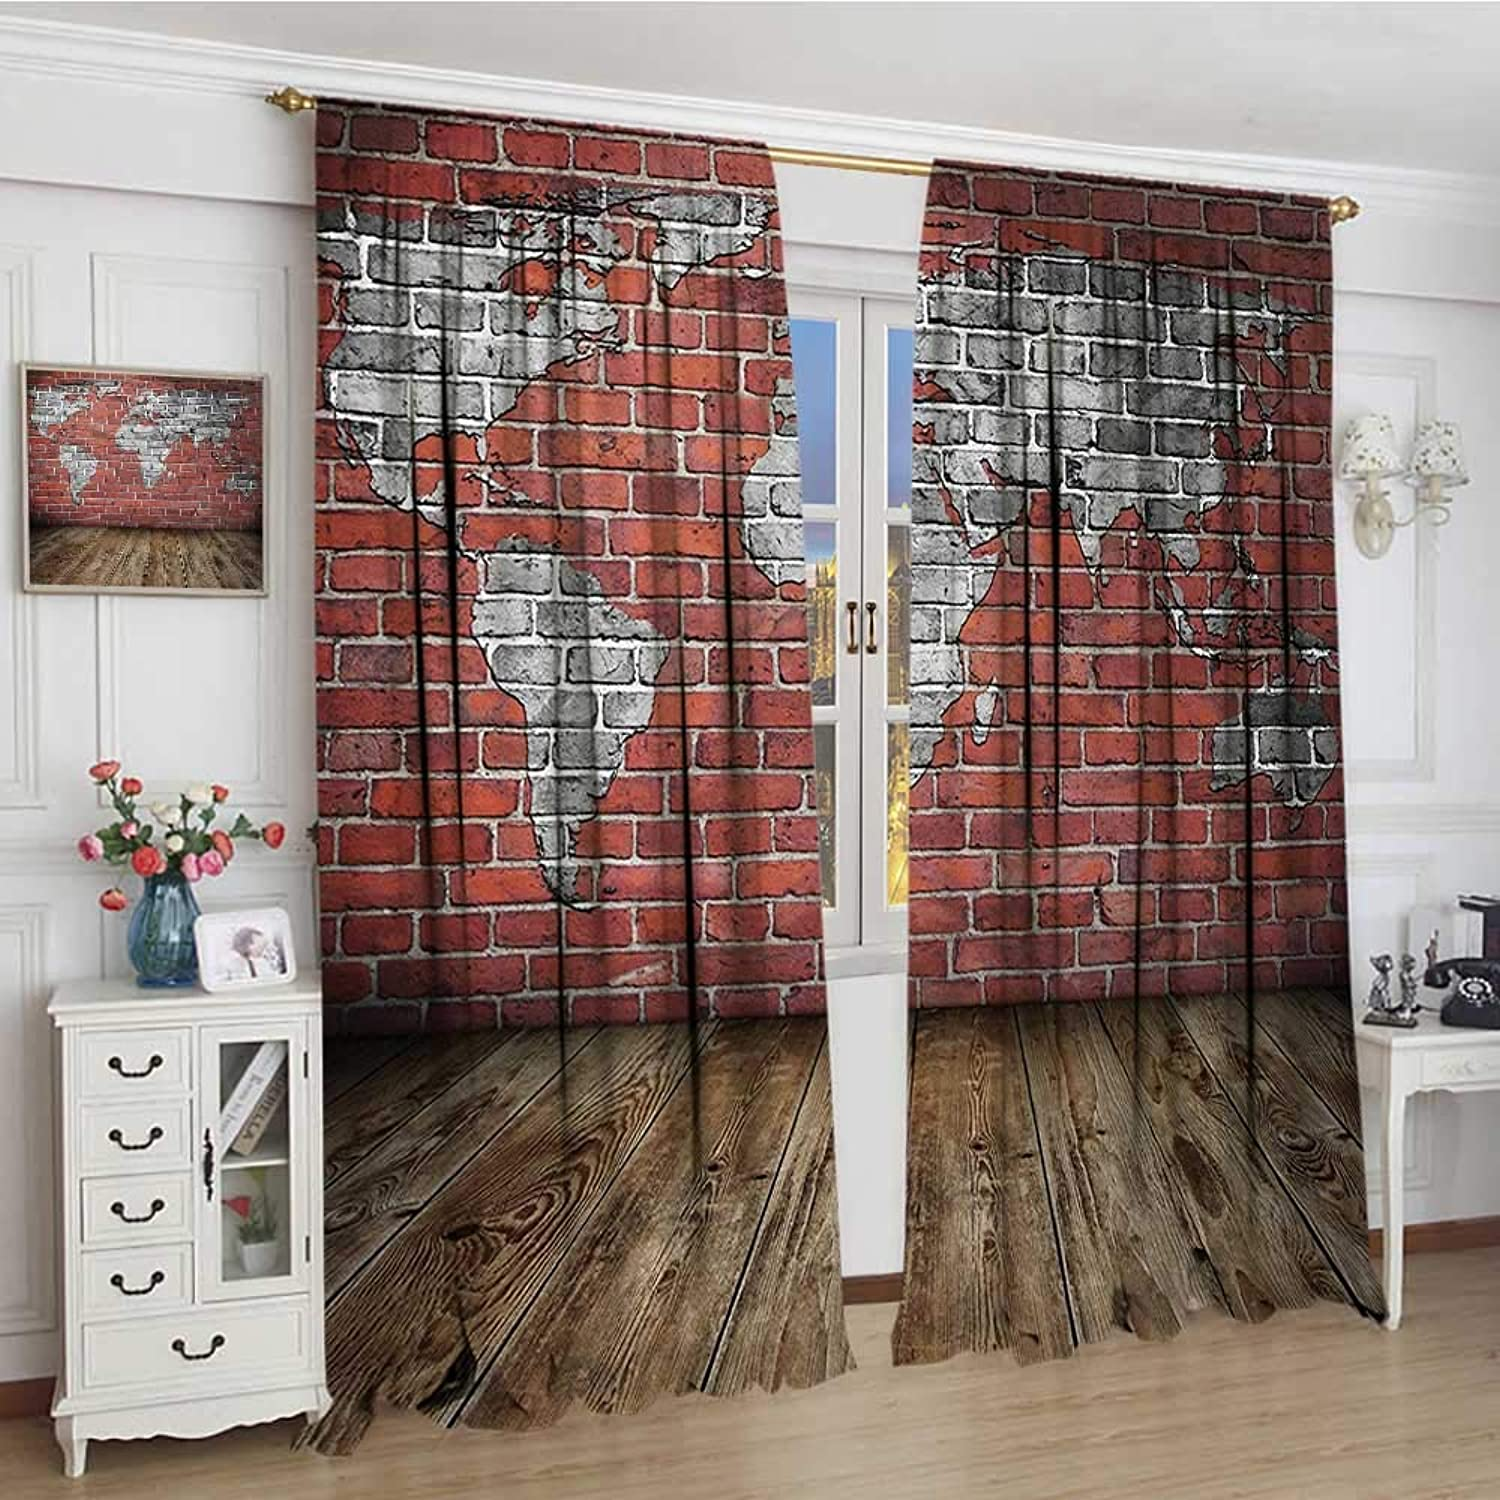 Smallbeefly Wanderlust Room Darkening Wide Curtains Vintage Grunge Map Room Style Brick Rustic Geographic Interior Travel Drapes for Living Room 108 x84  Cinnamon Pale Grey